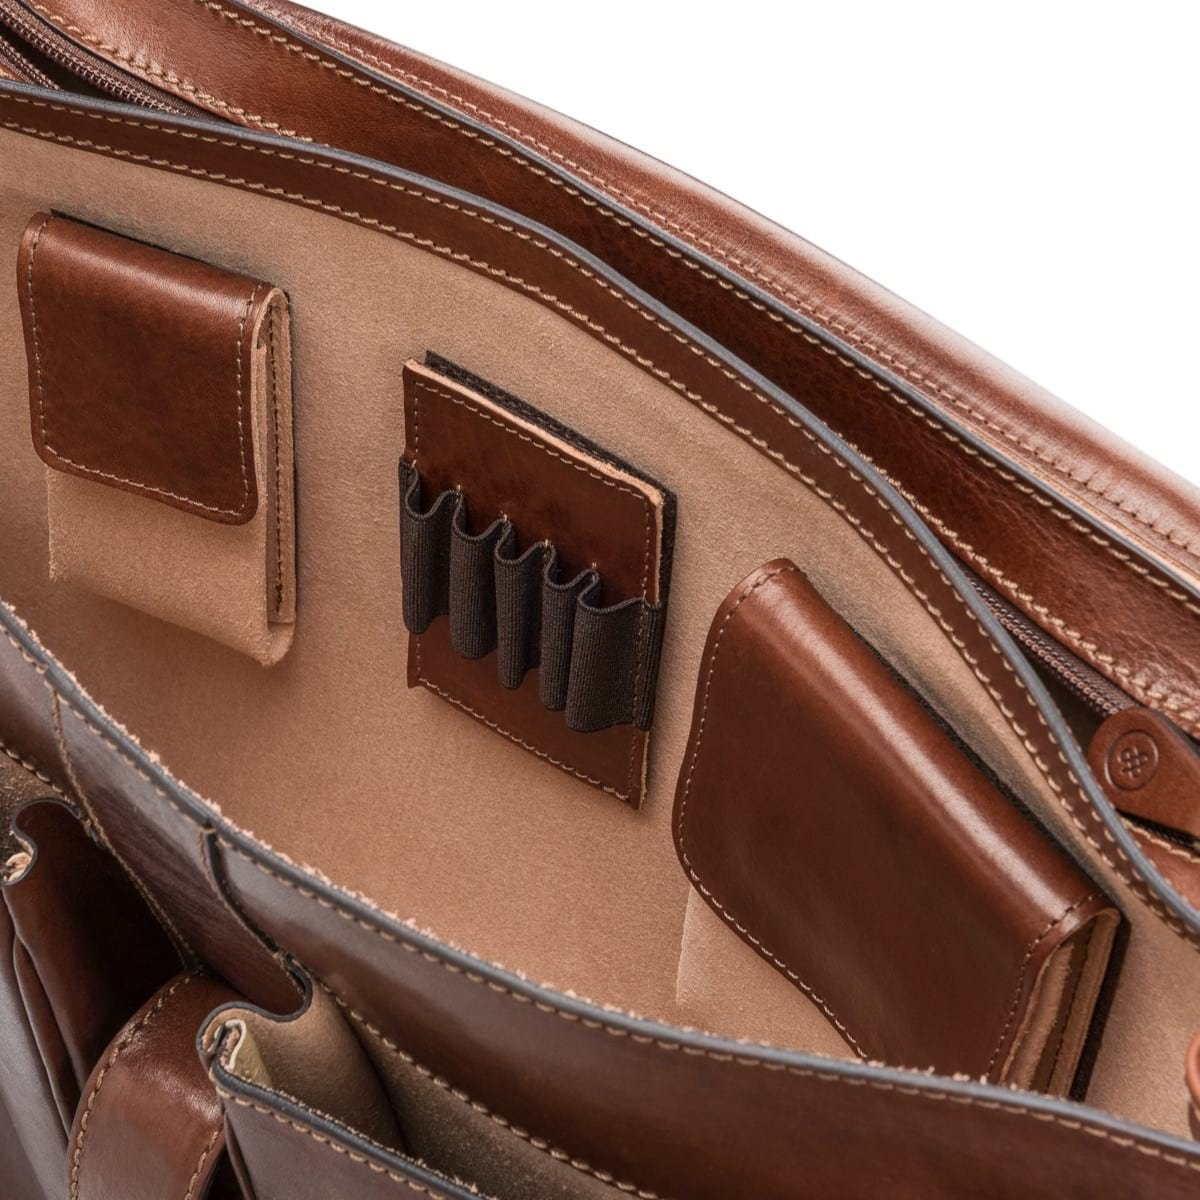 Maxwell Scott Personalized Luxury Tan Large Briefcase (The Tomacelli 3 section) by Maxwell Scott Bags (Image #5)